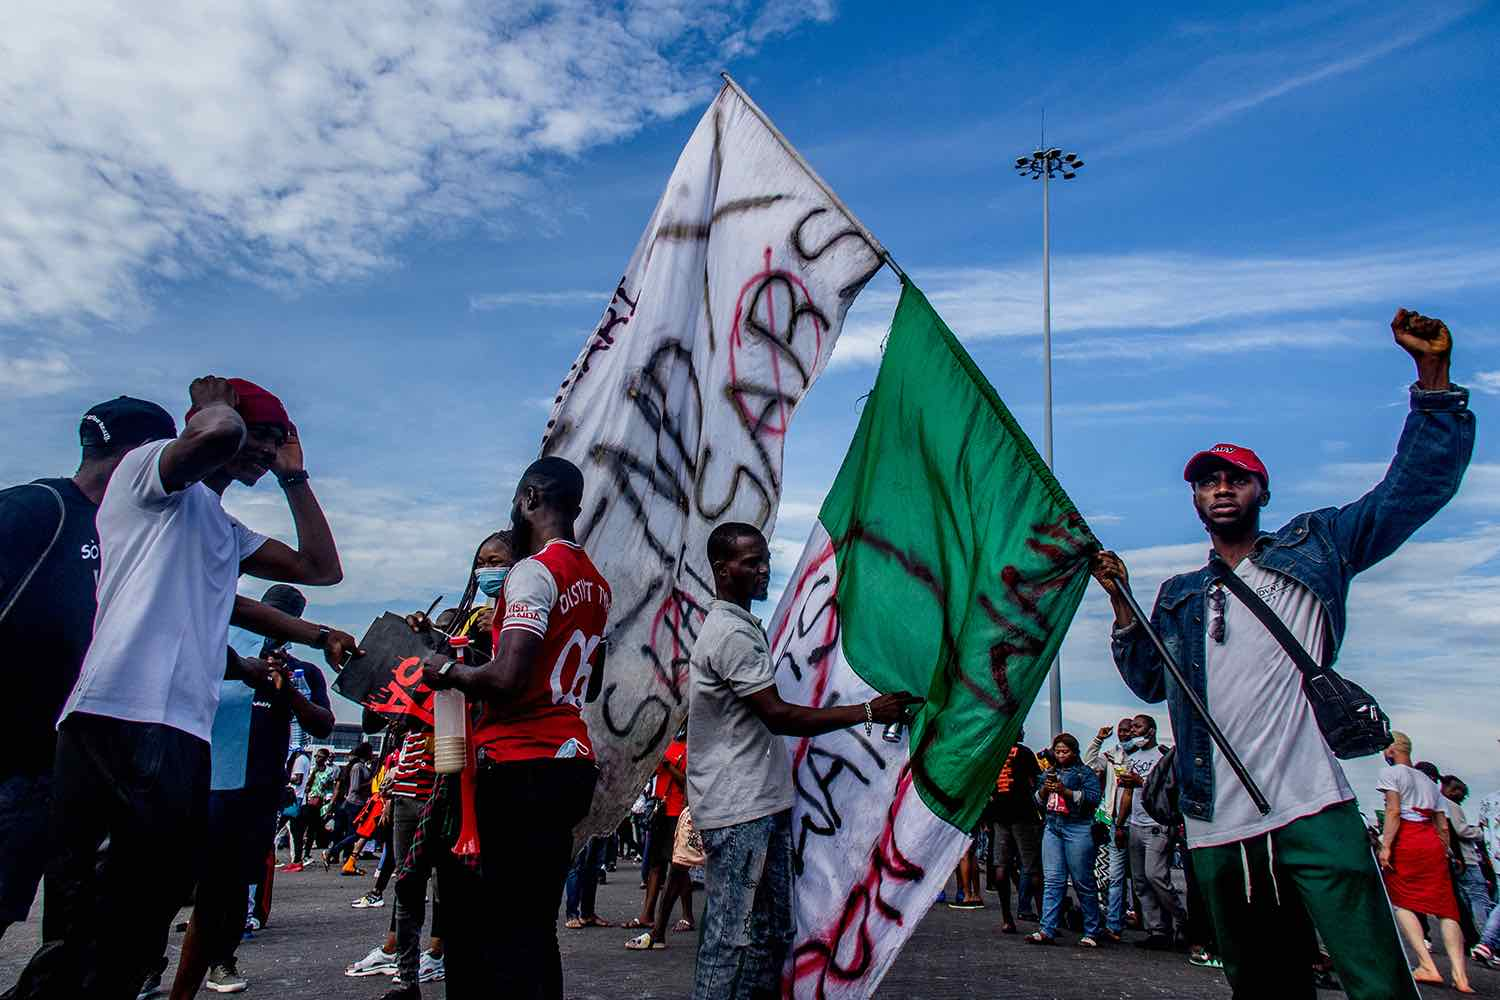 The End SARS campaign across Nigeria spawned from the controversial police program in Abuja. If you're confused about the protests, here's a breakdown.